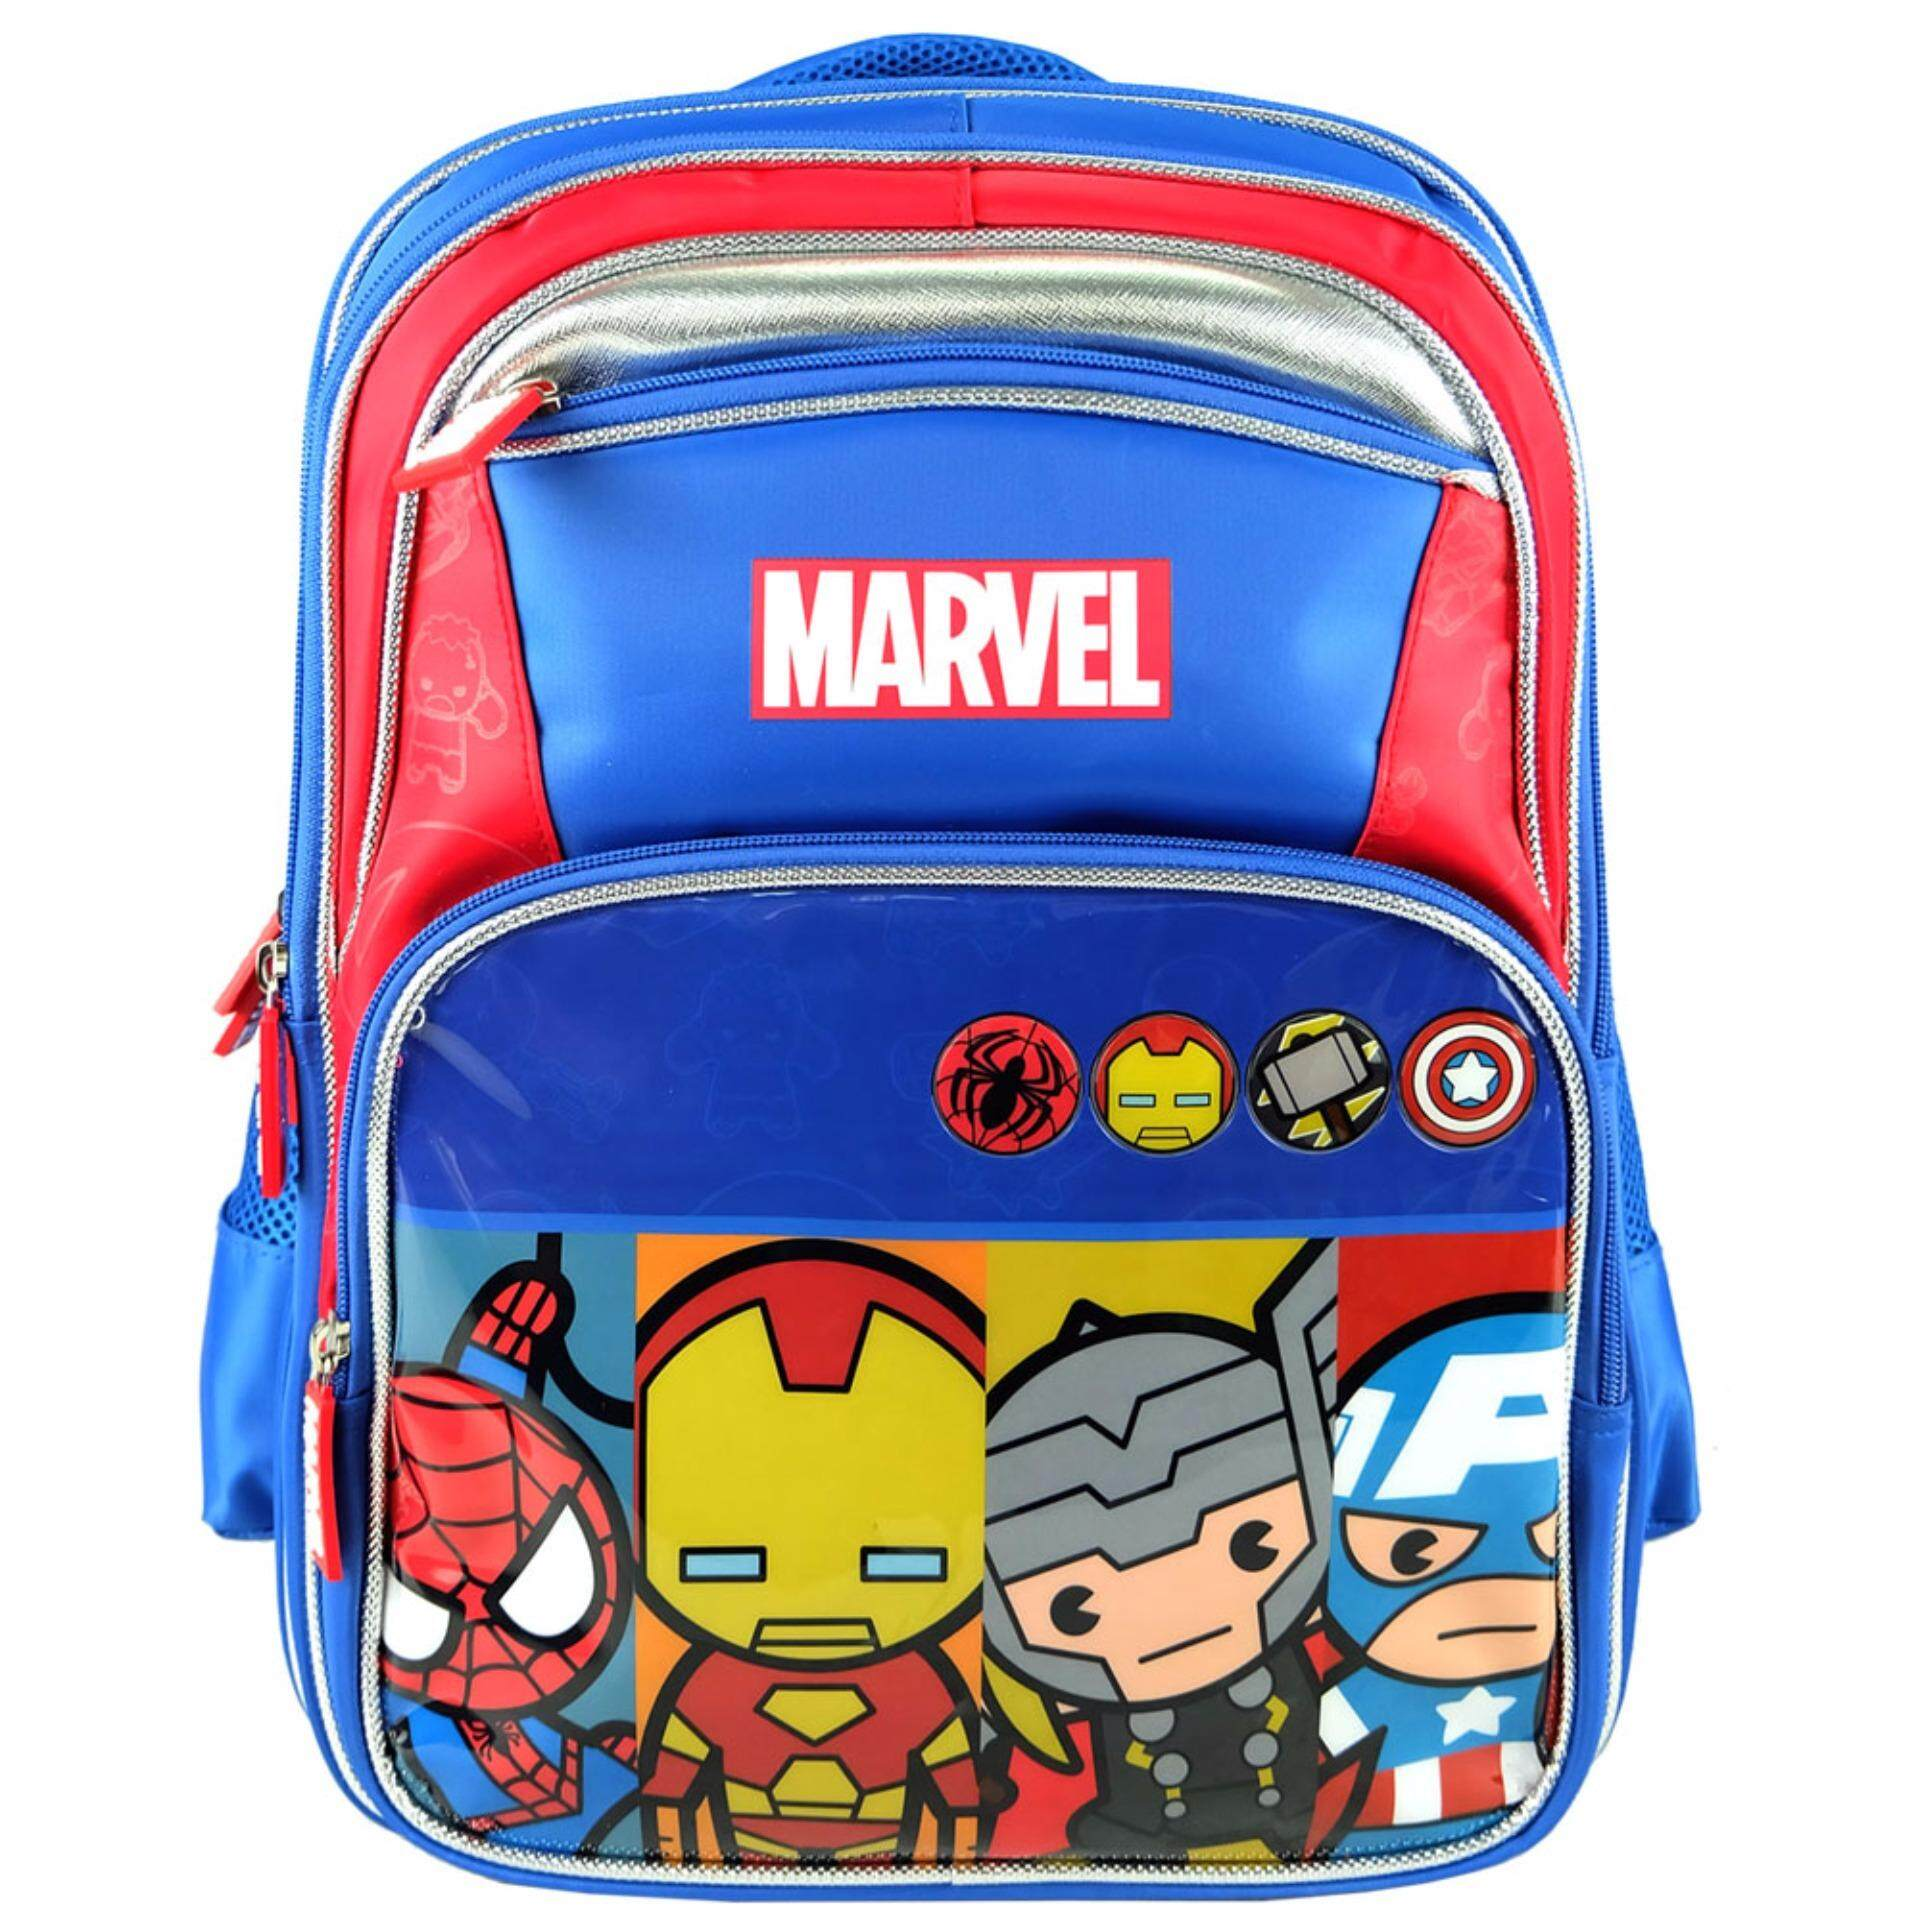 ed09b37c57 Marvel Avengers 16 inch Kawaii Heroes School Bag VKS1723